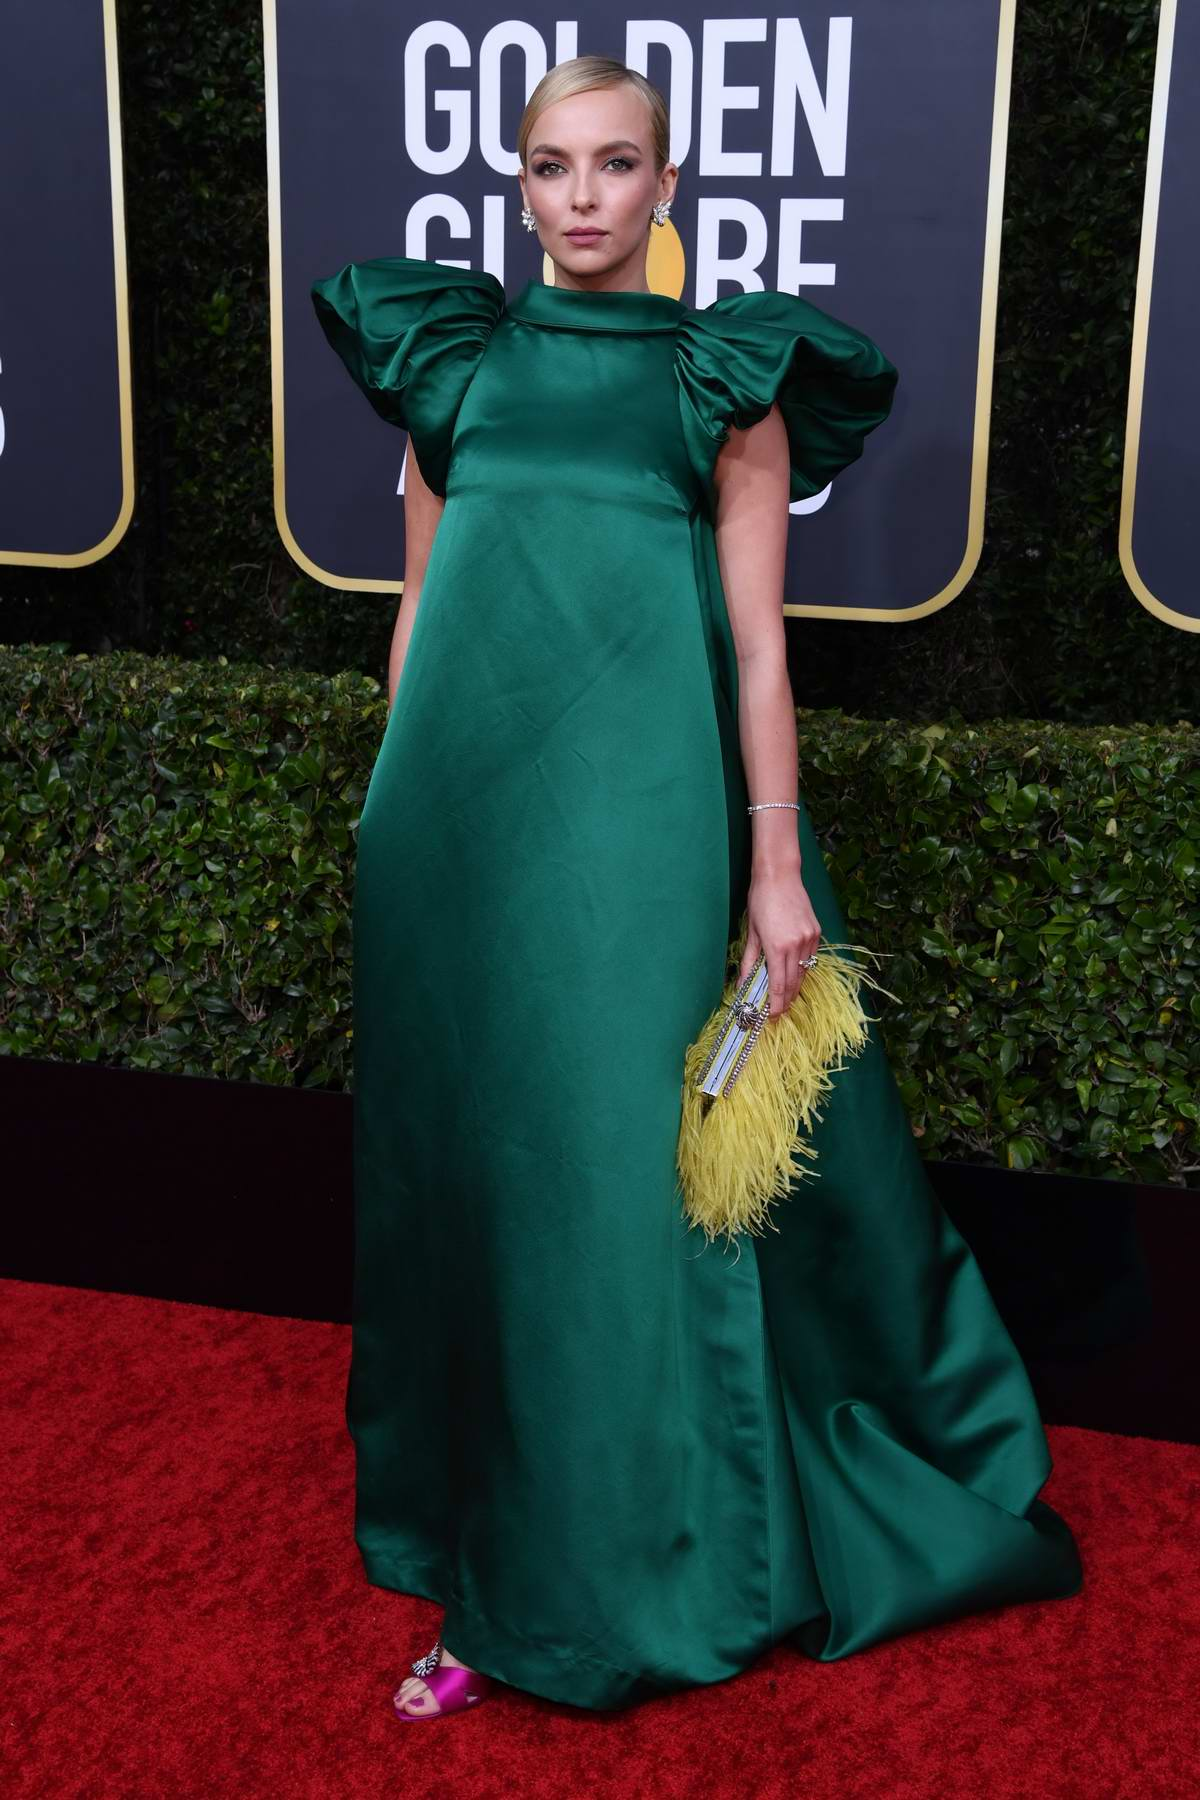 Jodie Comer attends the 77th Annual Golden Globe Awards at The Beverly Hilton Hotel in Beverly Hills, California